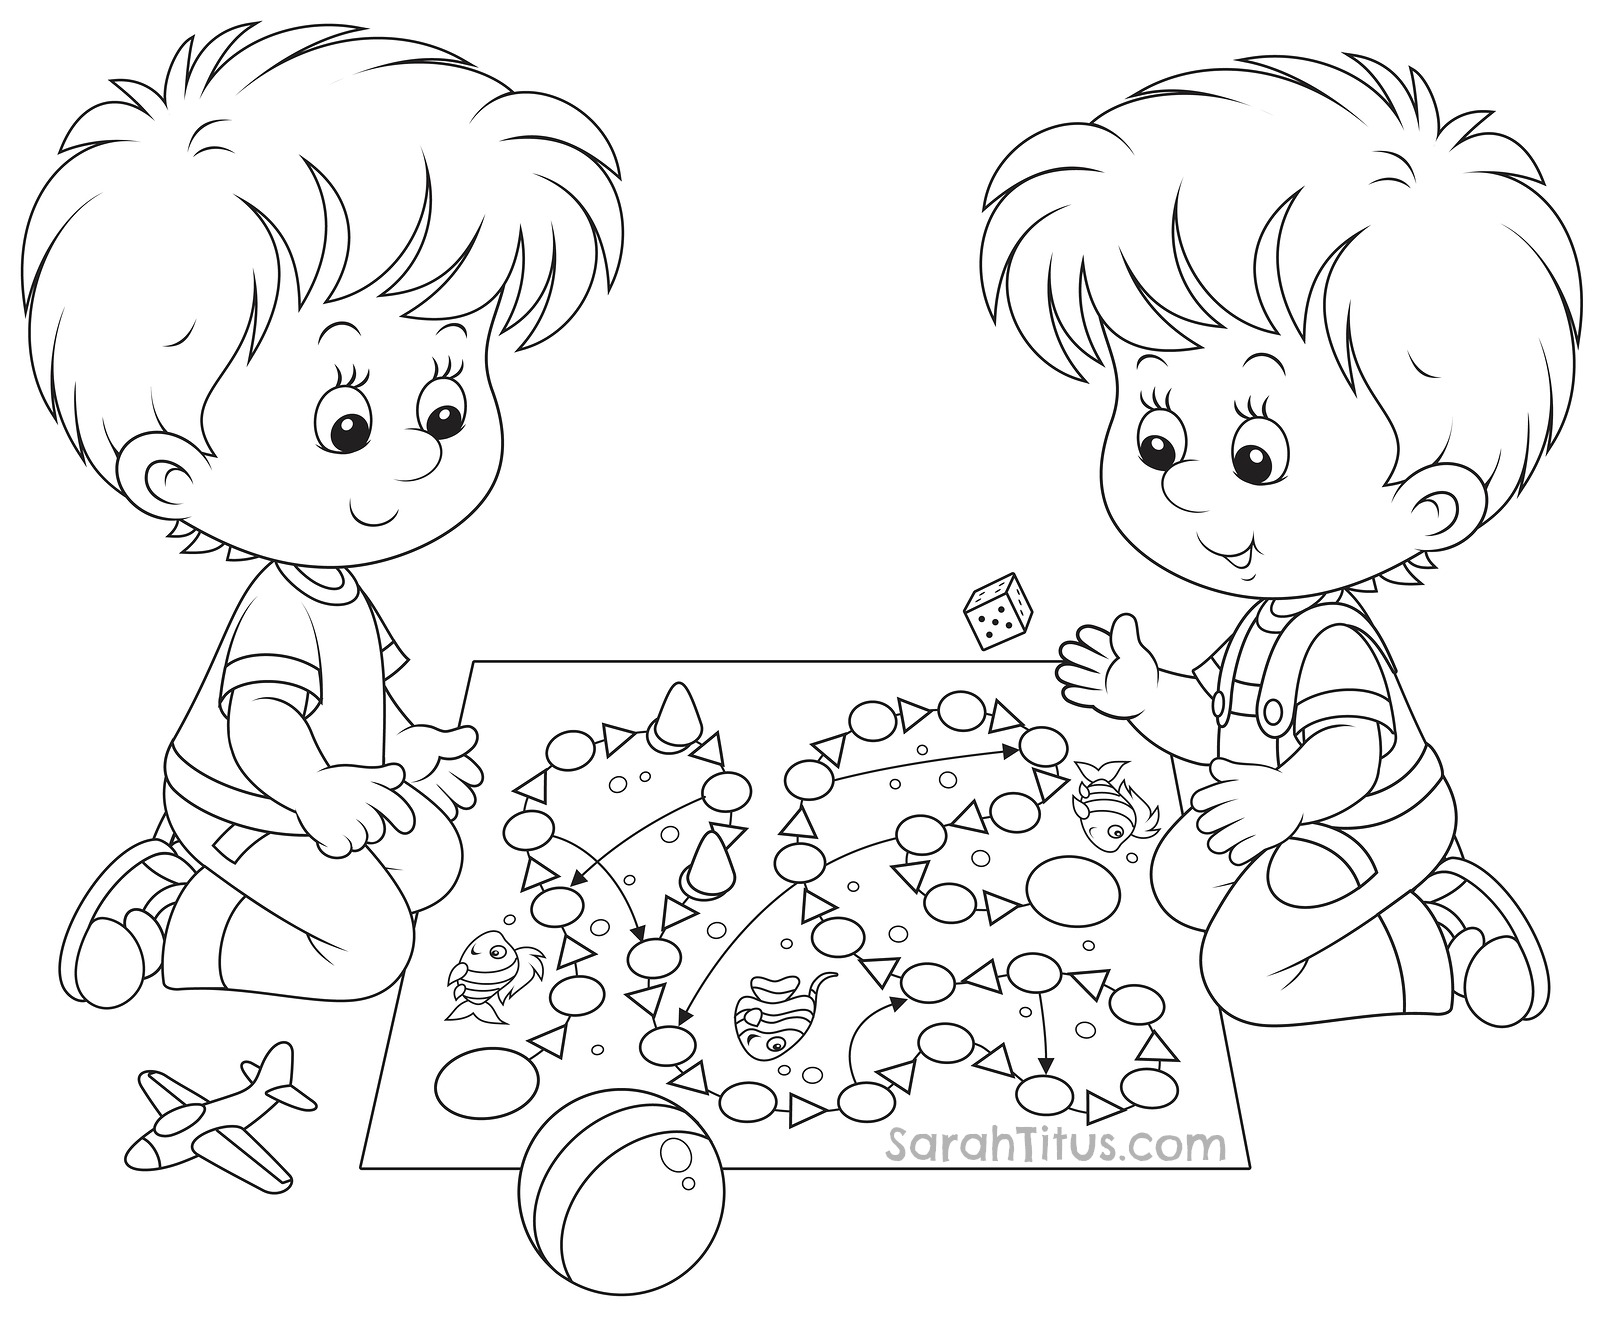 Colouring Drawing Games At GetDrawings.com